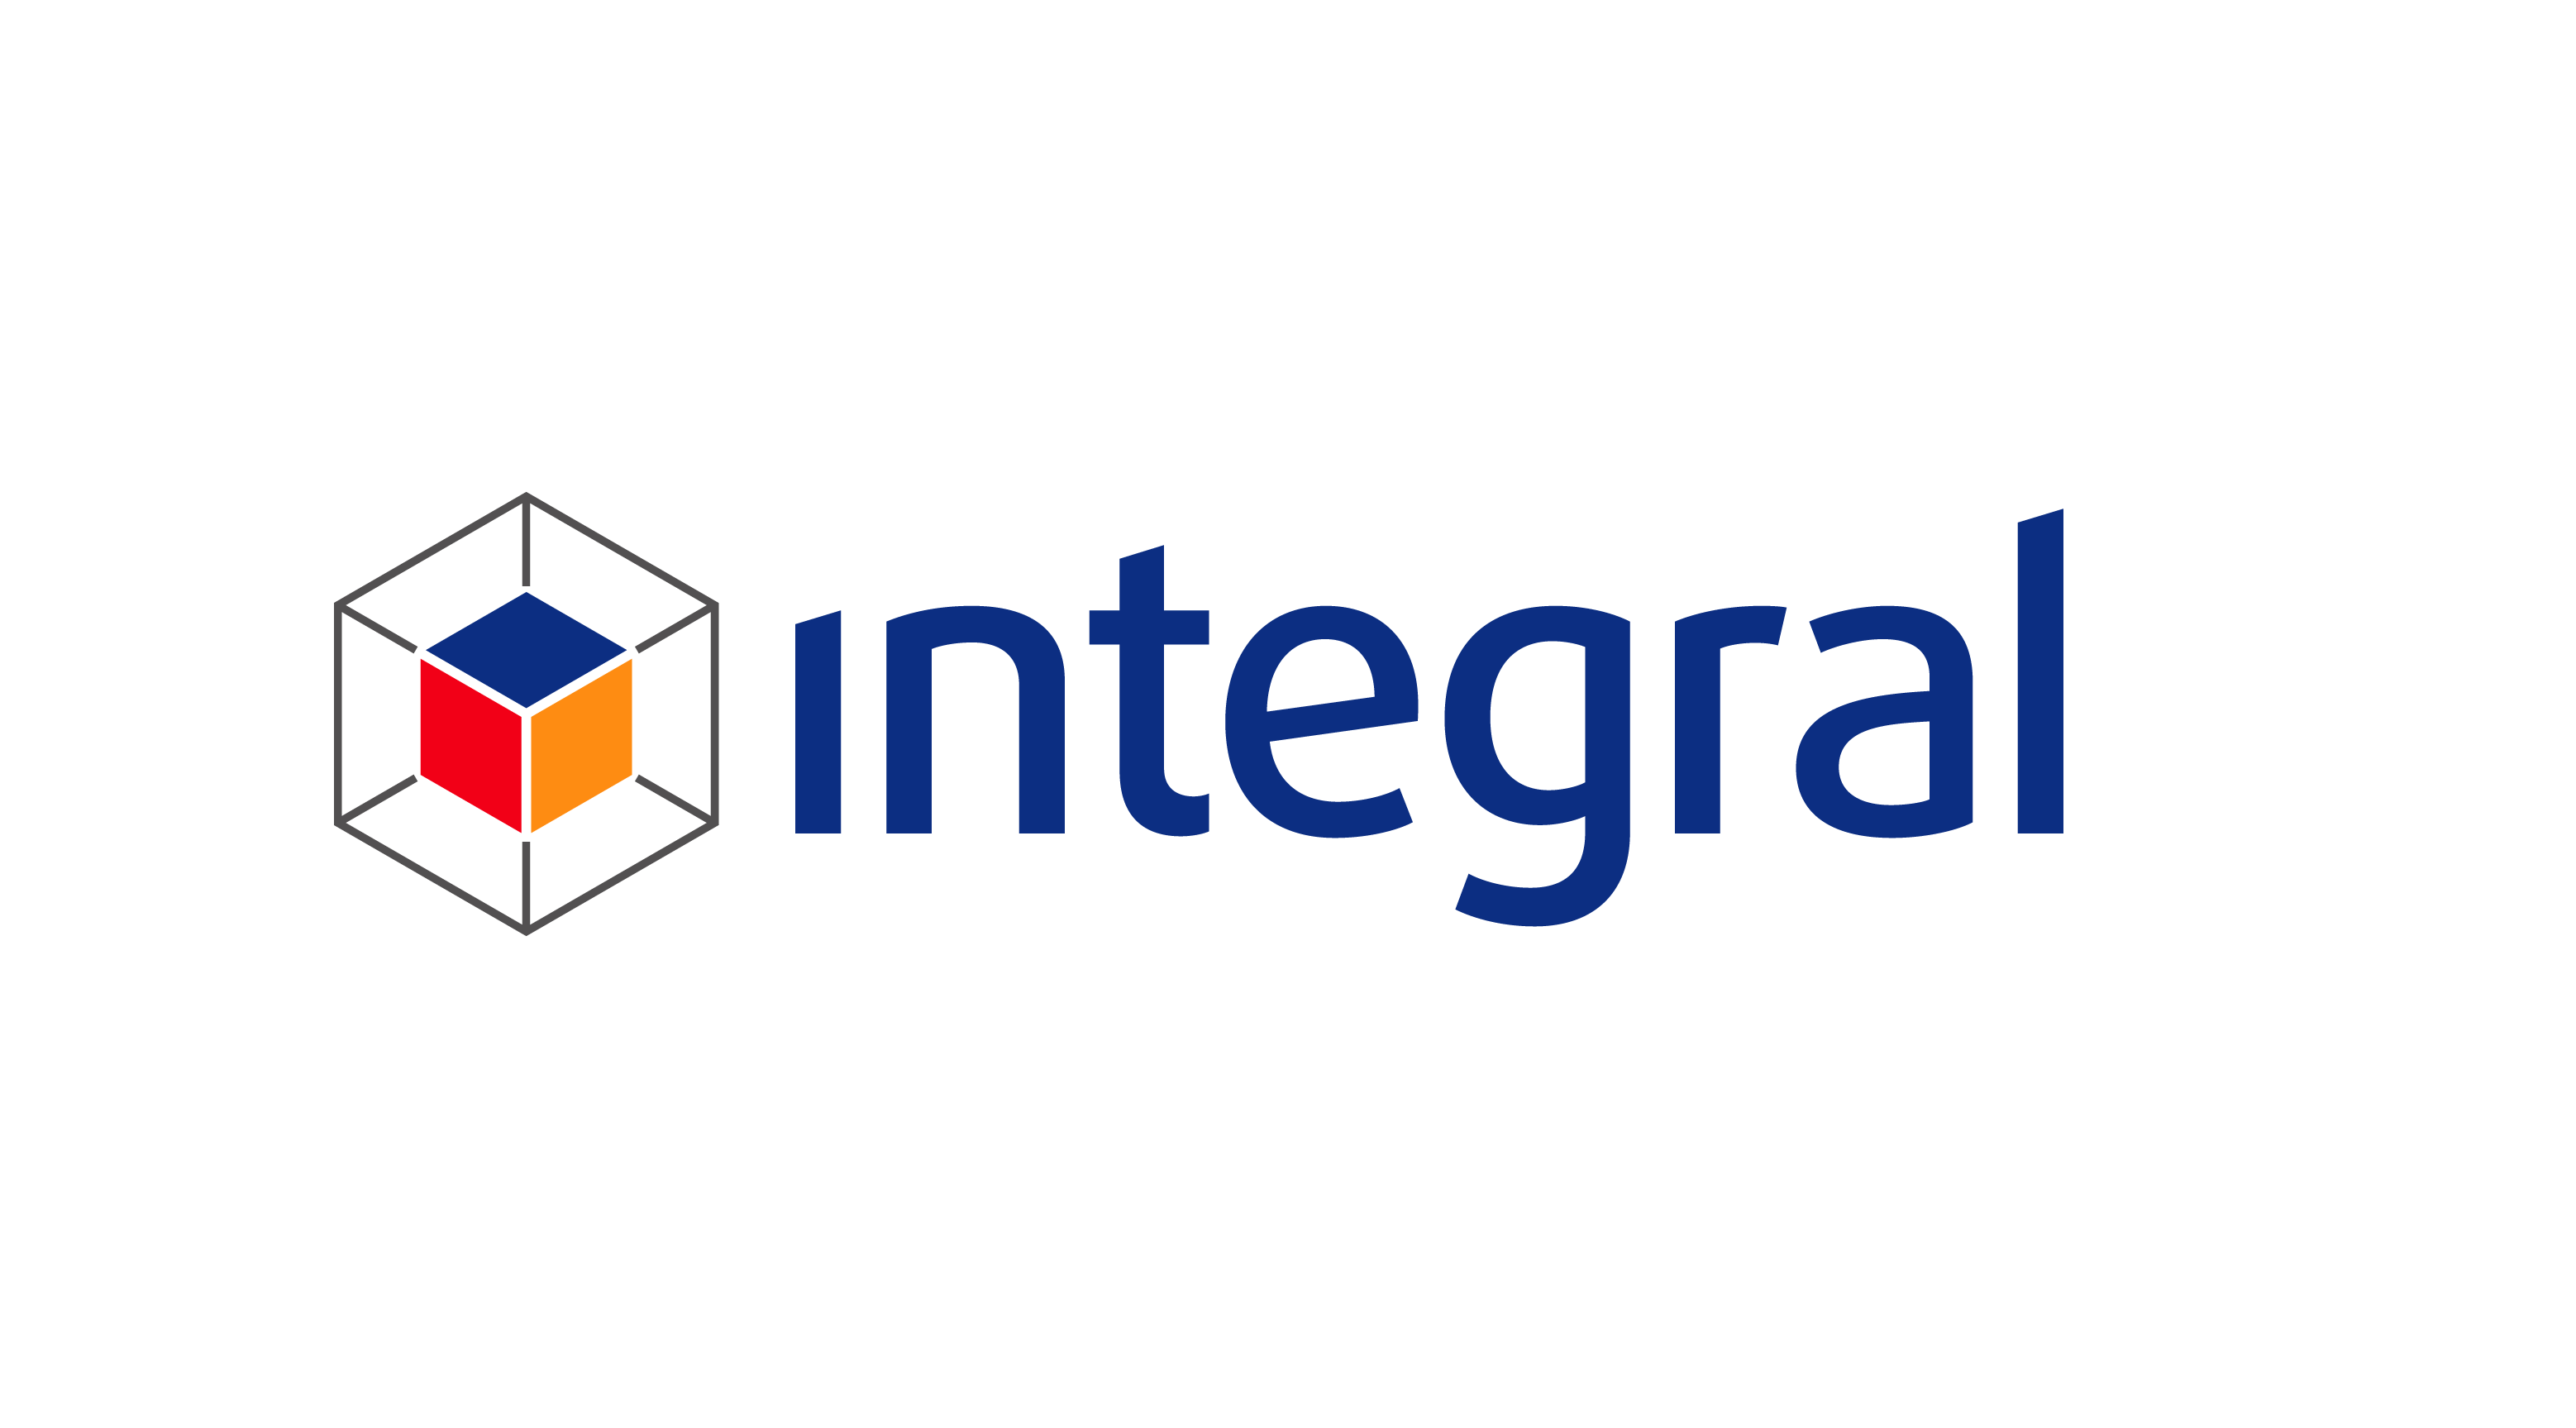 Integral Reports Average Daily Volumes of $44 Billion in July 2021